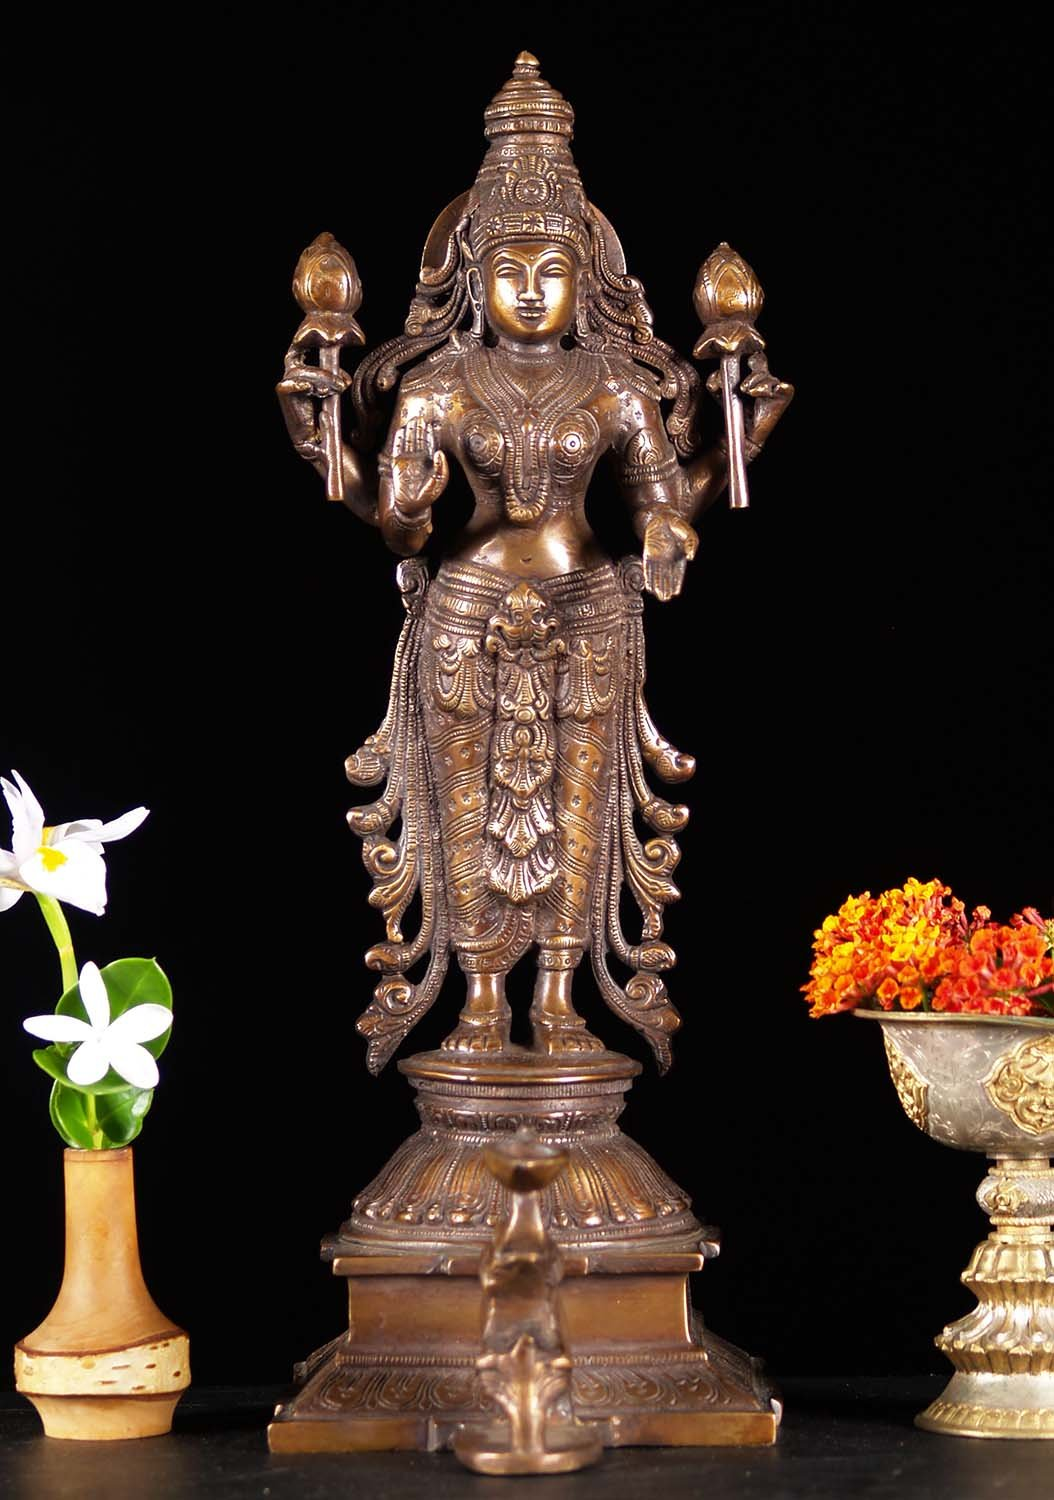 Brass Lakshmi Statue with Elephant Candle